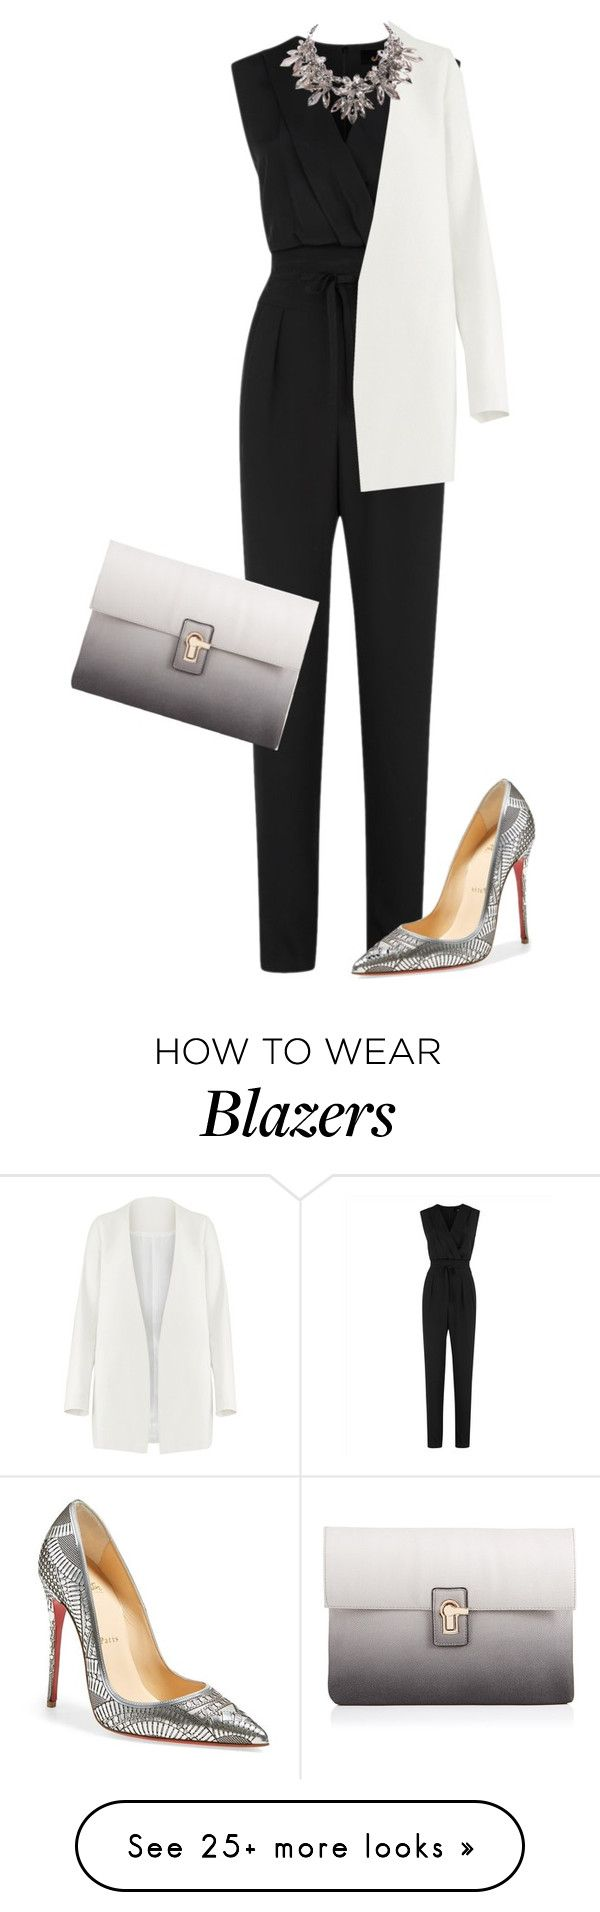 """Untitled #1450"" by little-wrecked-soul on Polyvore featuring Jaeger, Lipsy, Non and Christian Louboutin"